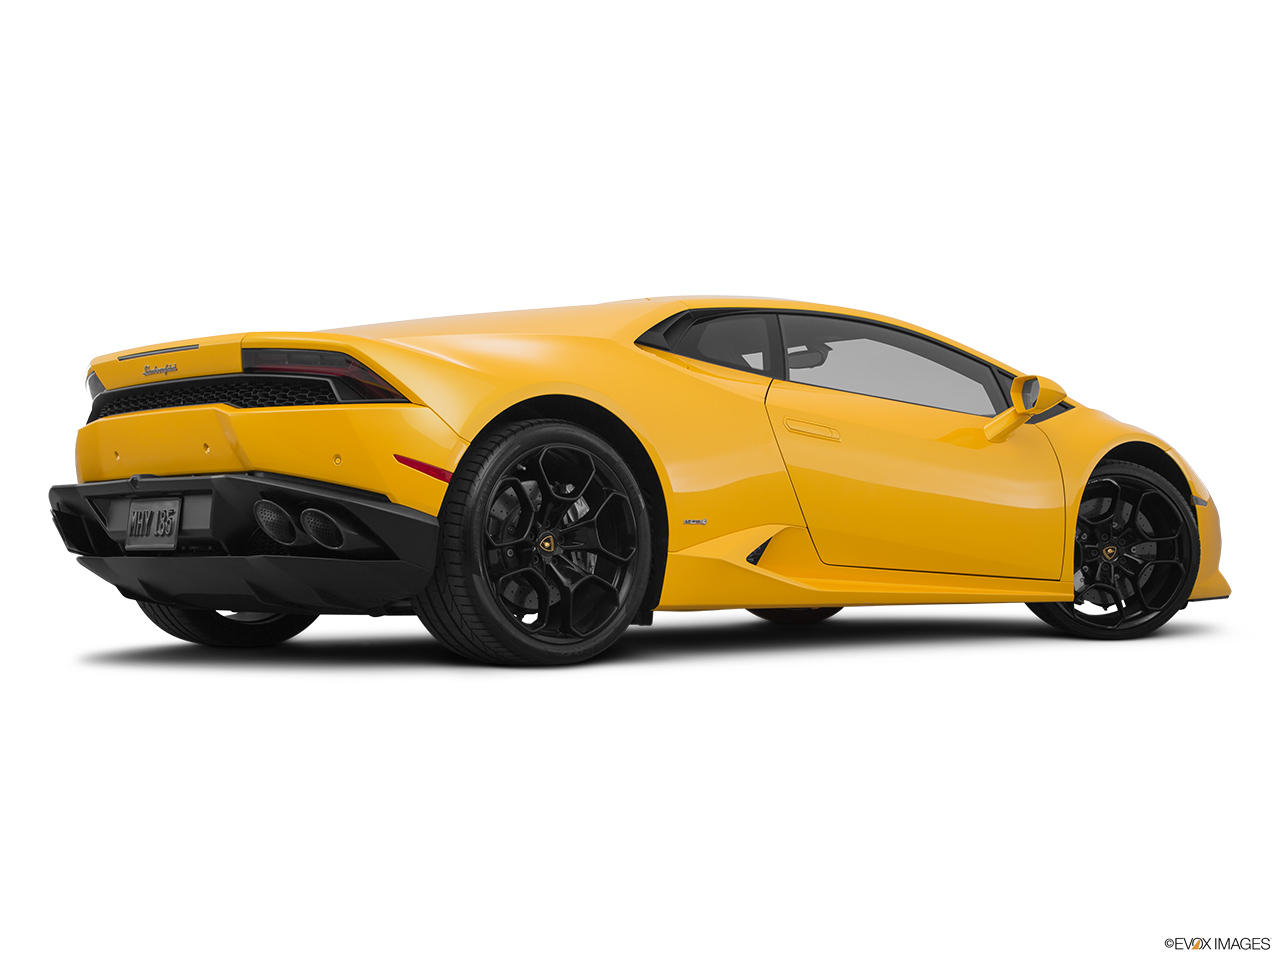 2015 Lamborghini Huracan LP 610-4 Low/wide rear 5/8.